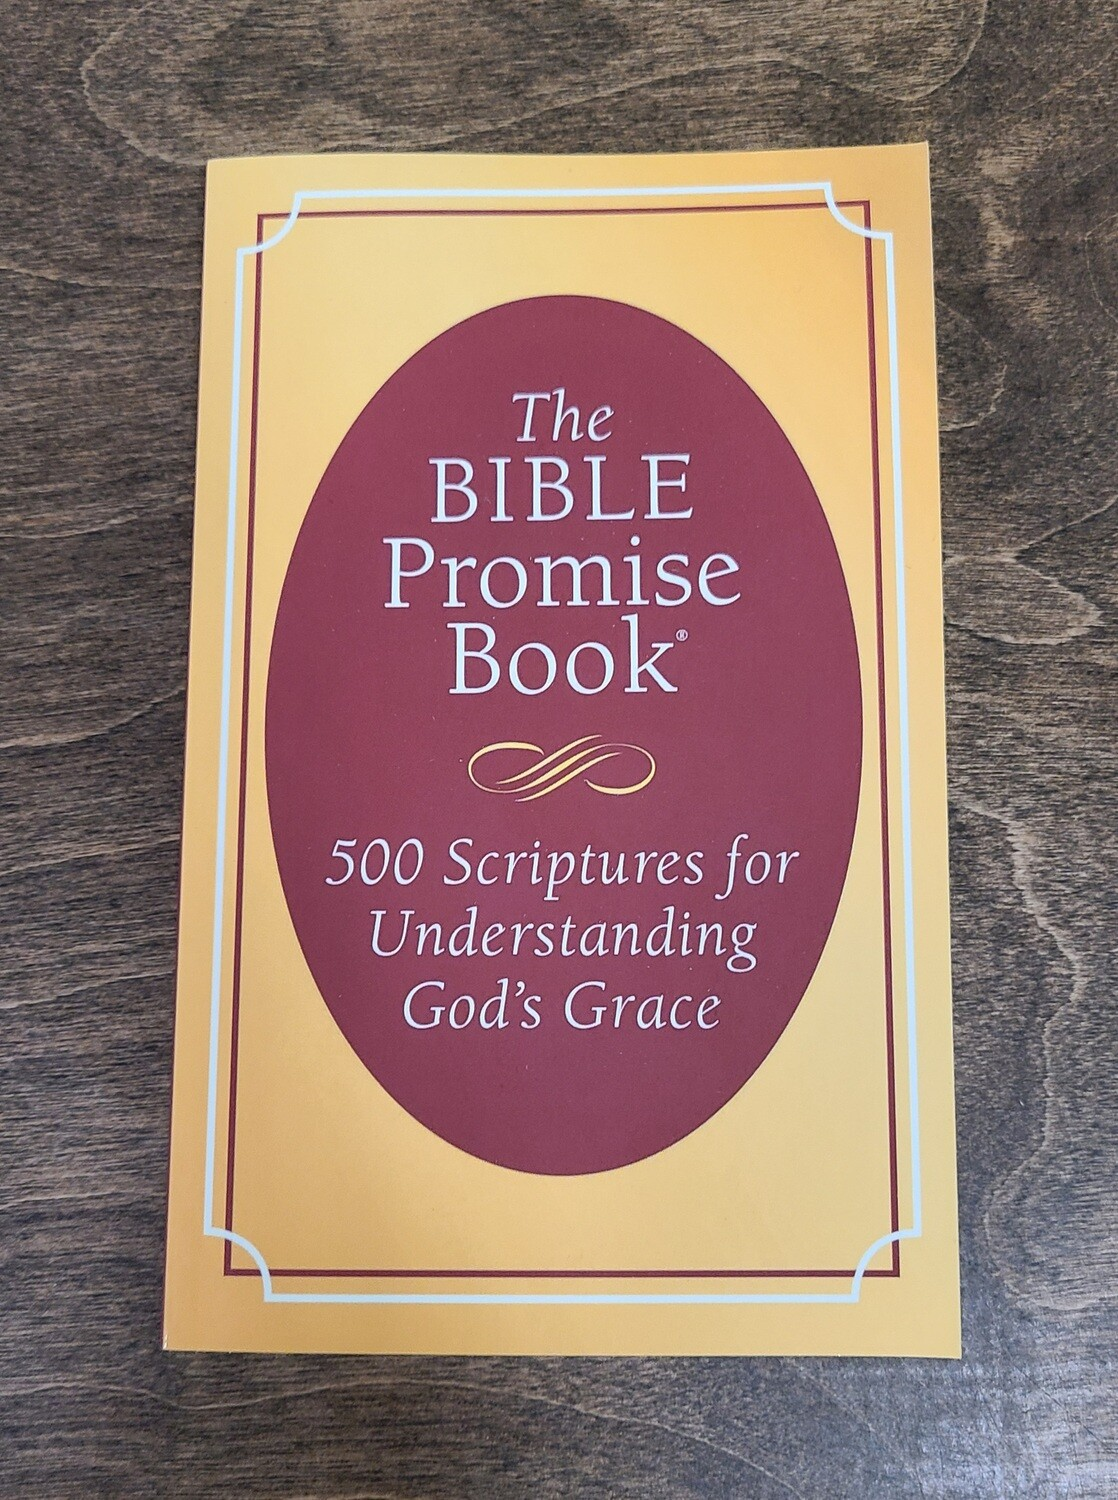 The Bible Promise Book: 500 Scriptures for Understanding God's Grace by Jessie Fioritto